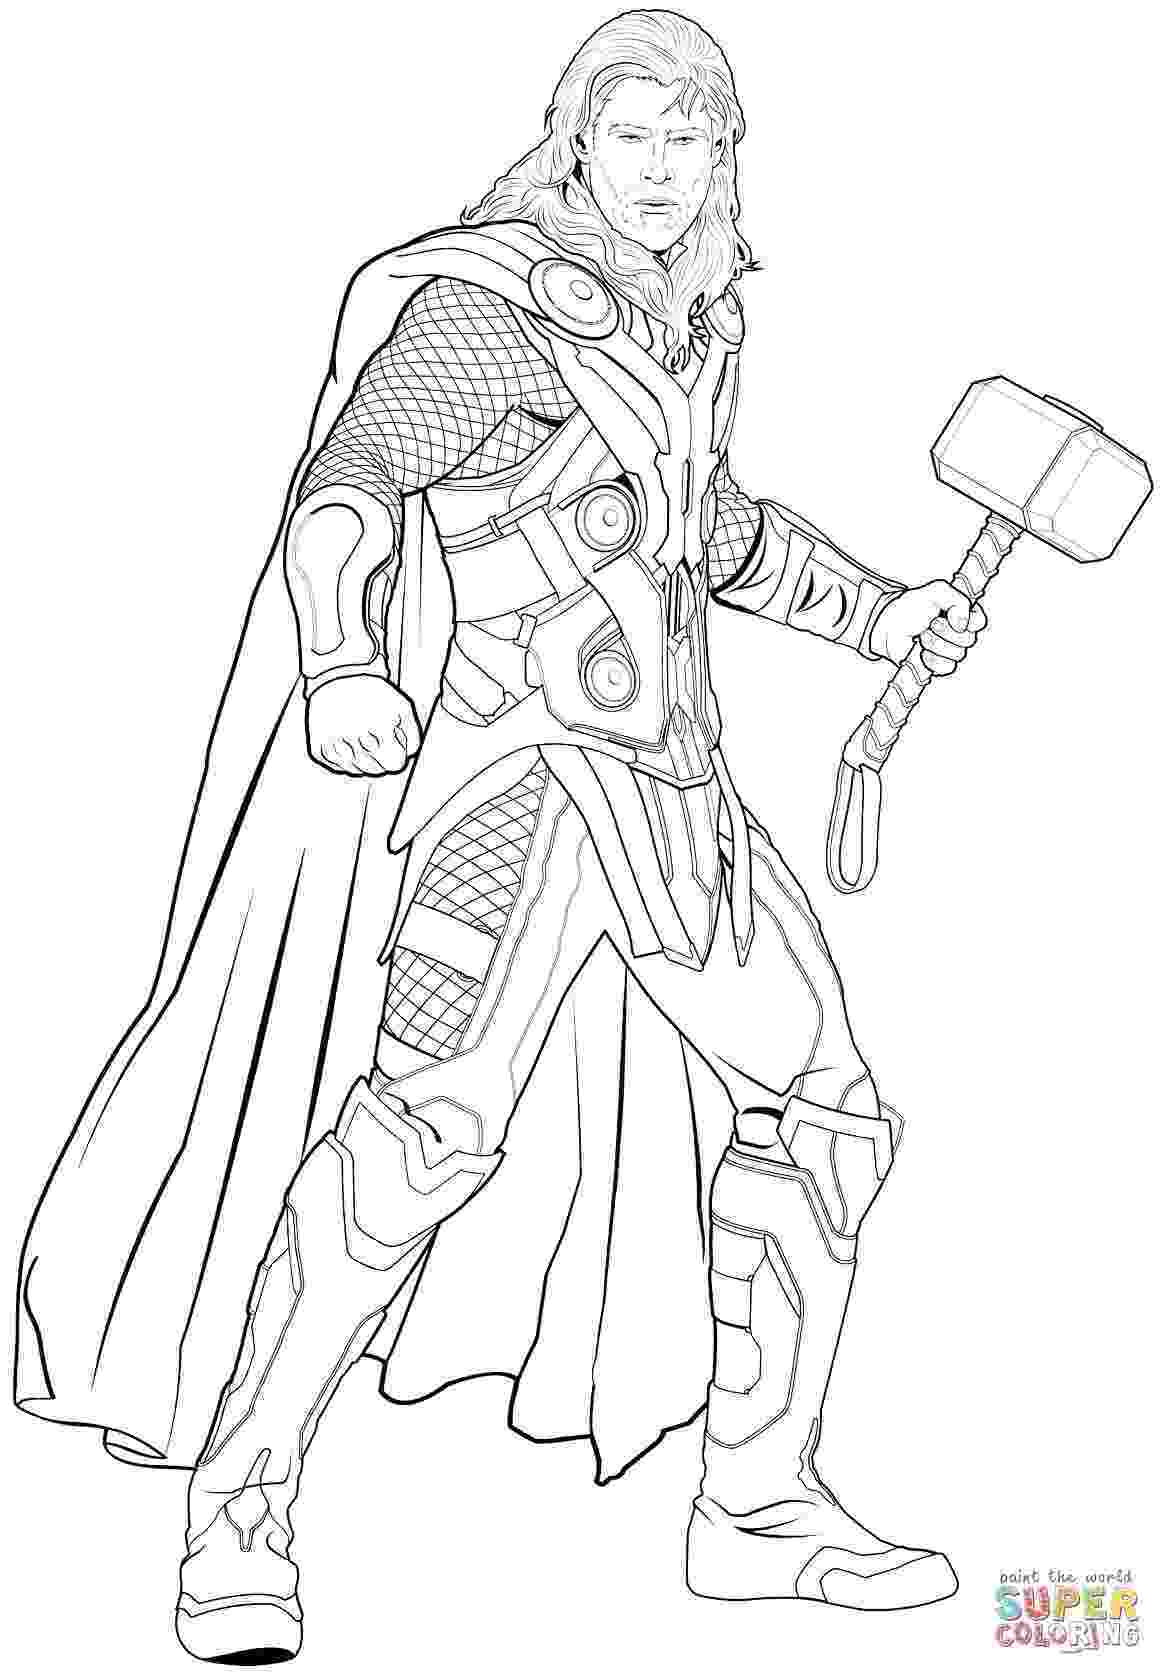 avengers coloring pages to print avengers coloring pages free printable avengers coloring avengers pages print coloring to